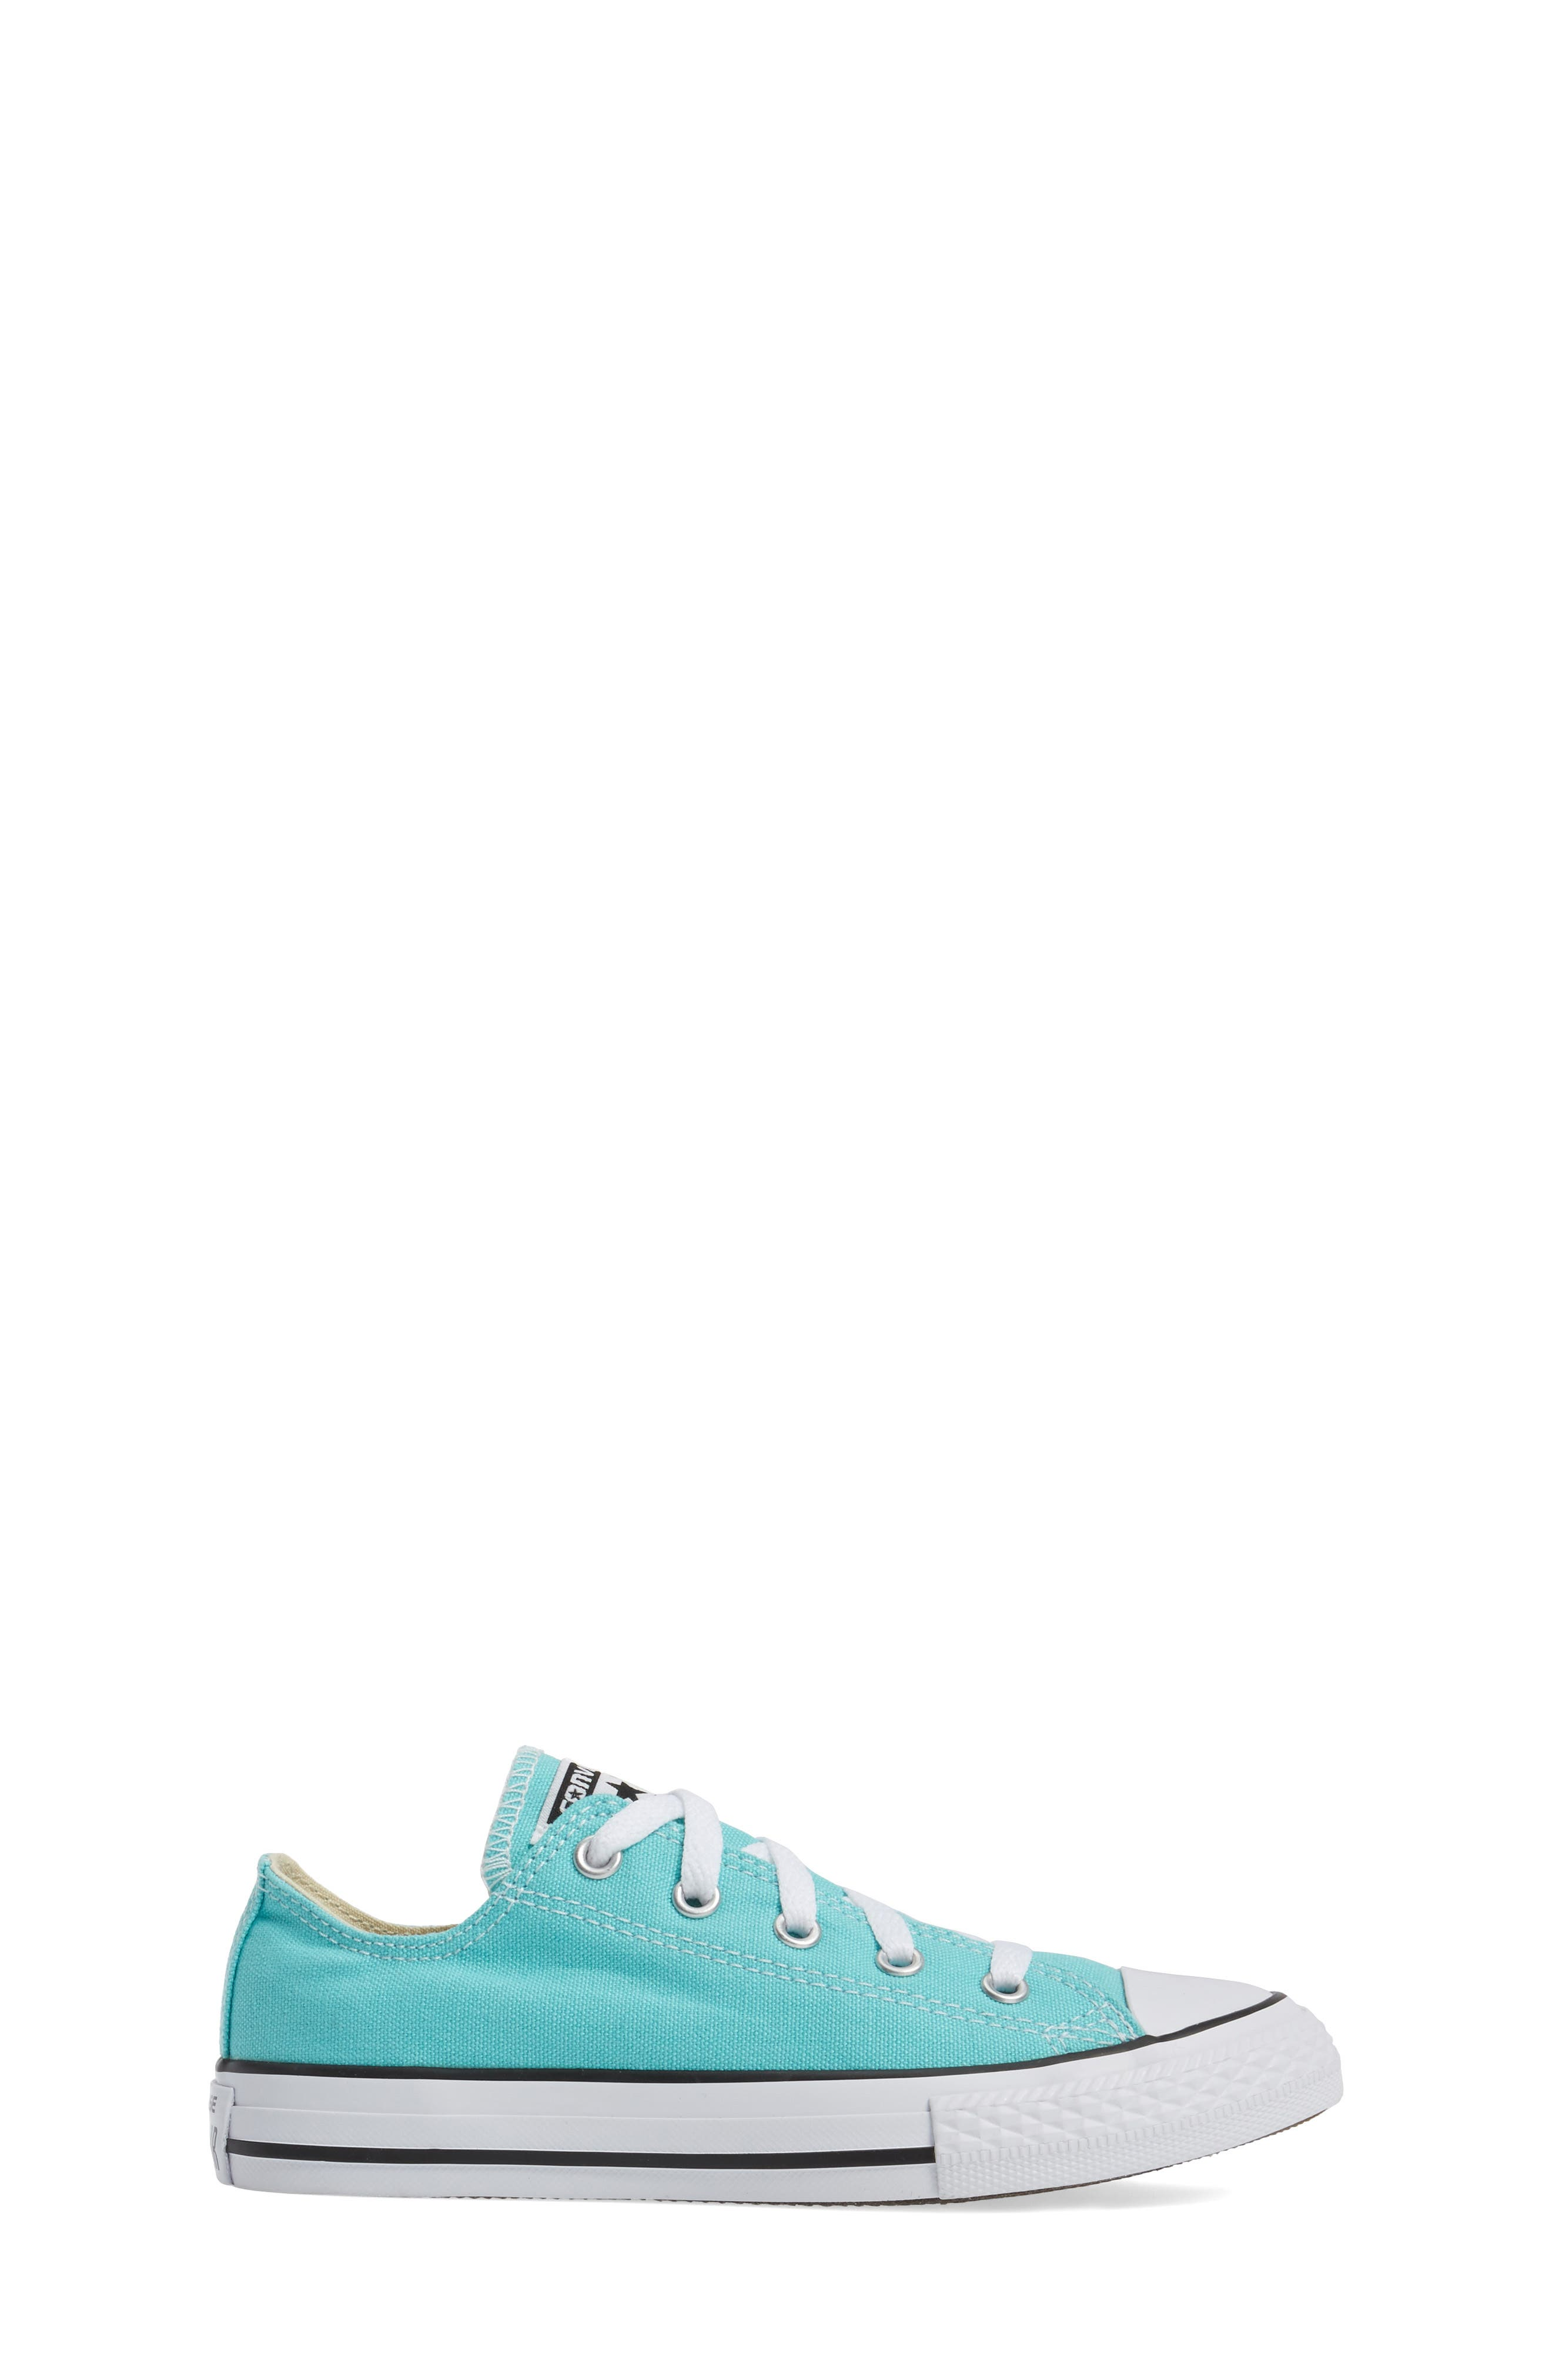 Chuck Taylor<sup>®</sup> All Star<sup>®</sup> Low Top Sneaker,                             Alternate thumbnail 3, color,                             406